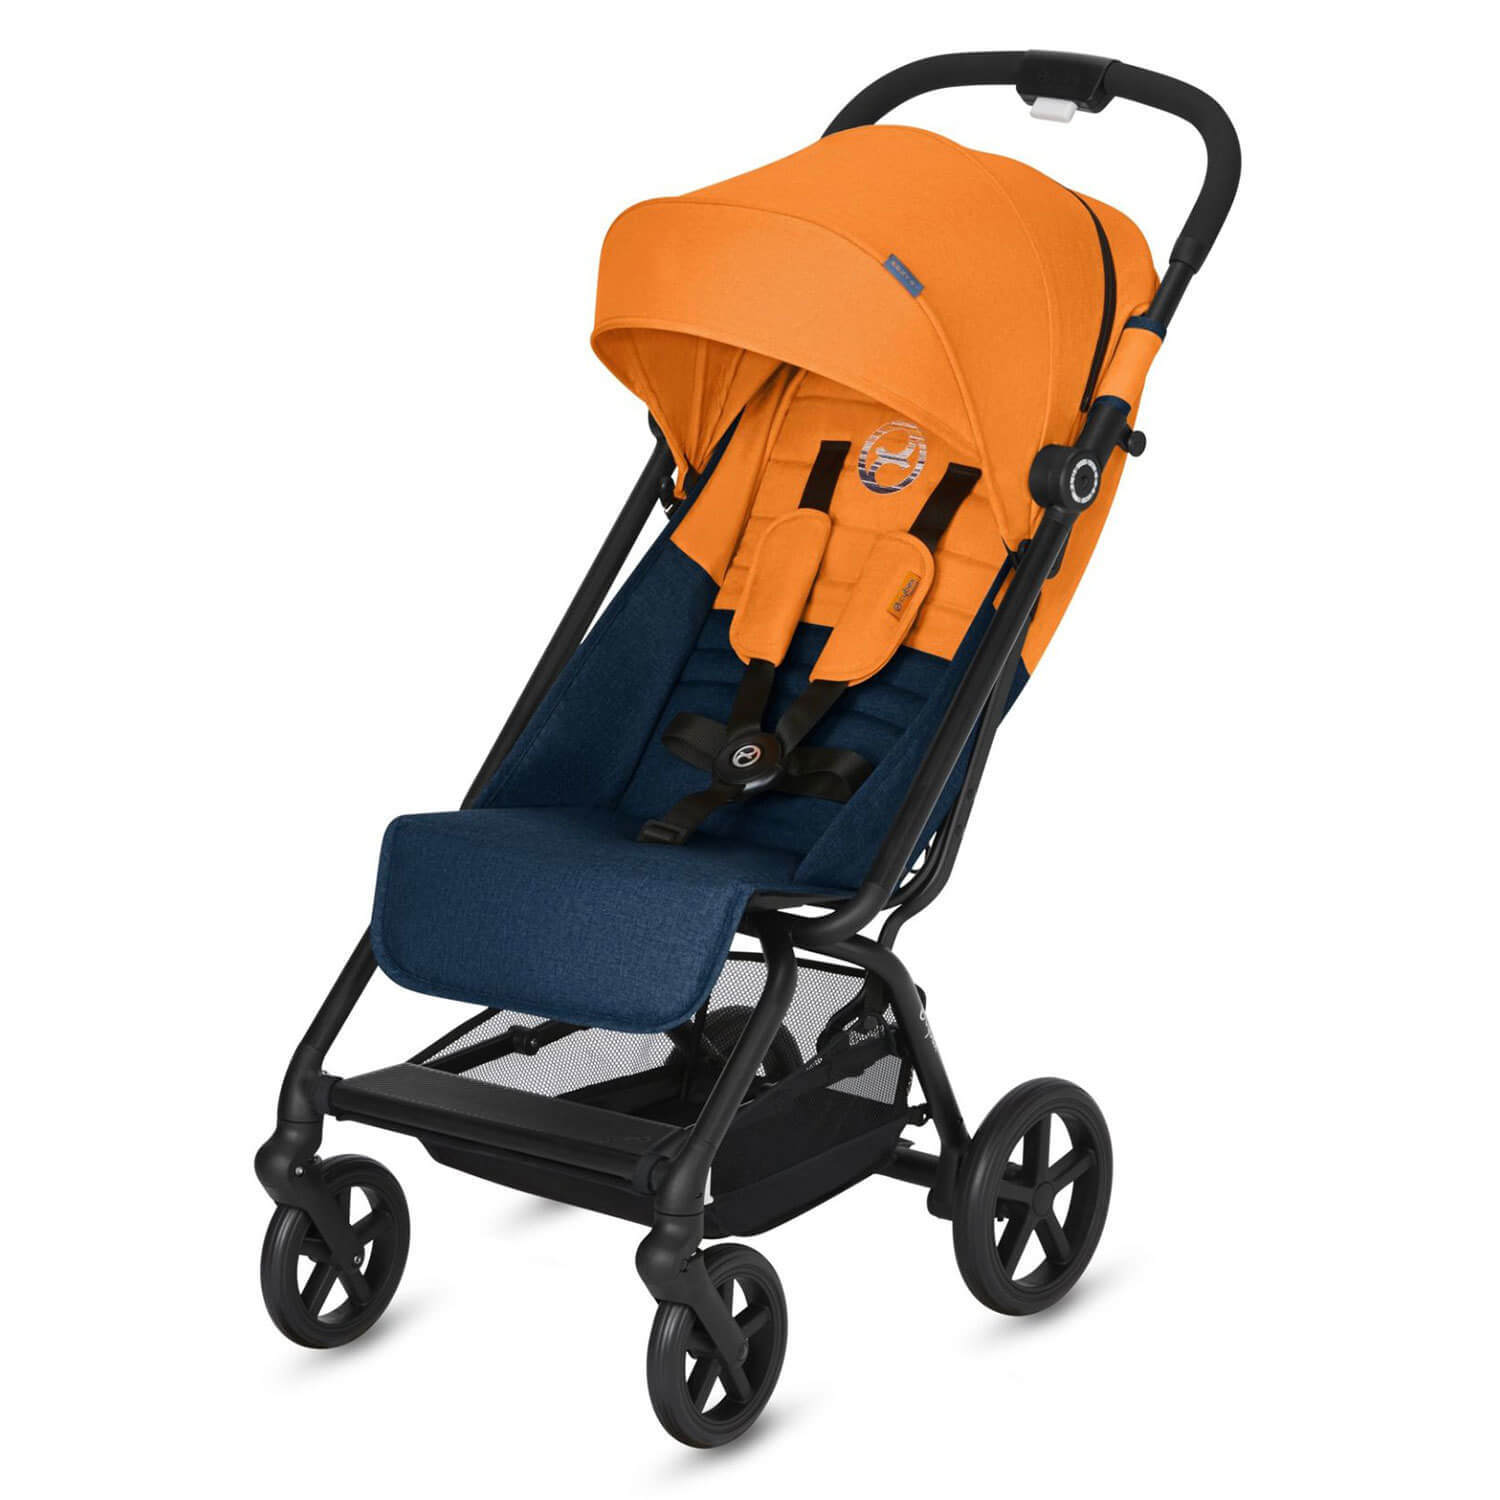 Cybex Eezy S Plus Прогулочная коляска Cybex Eezy S Plus Tropical Blue Cybex-Eezy-S-Plus-tropical-blue.jpg